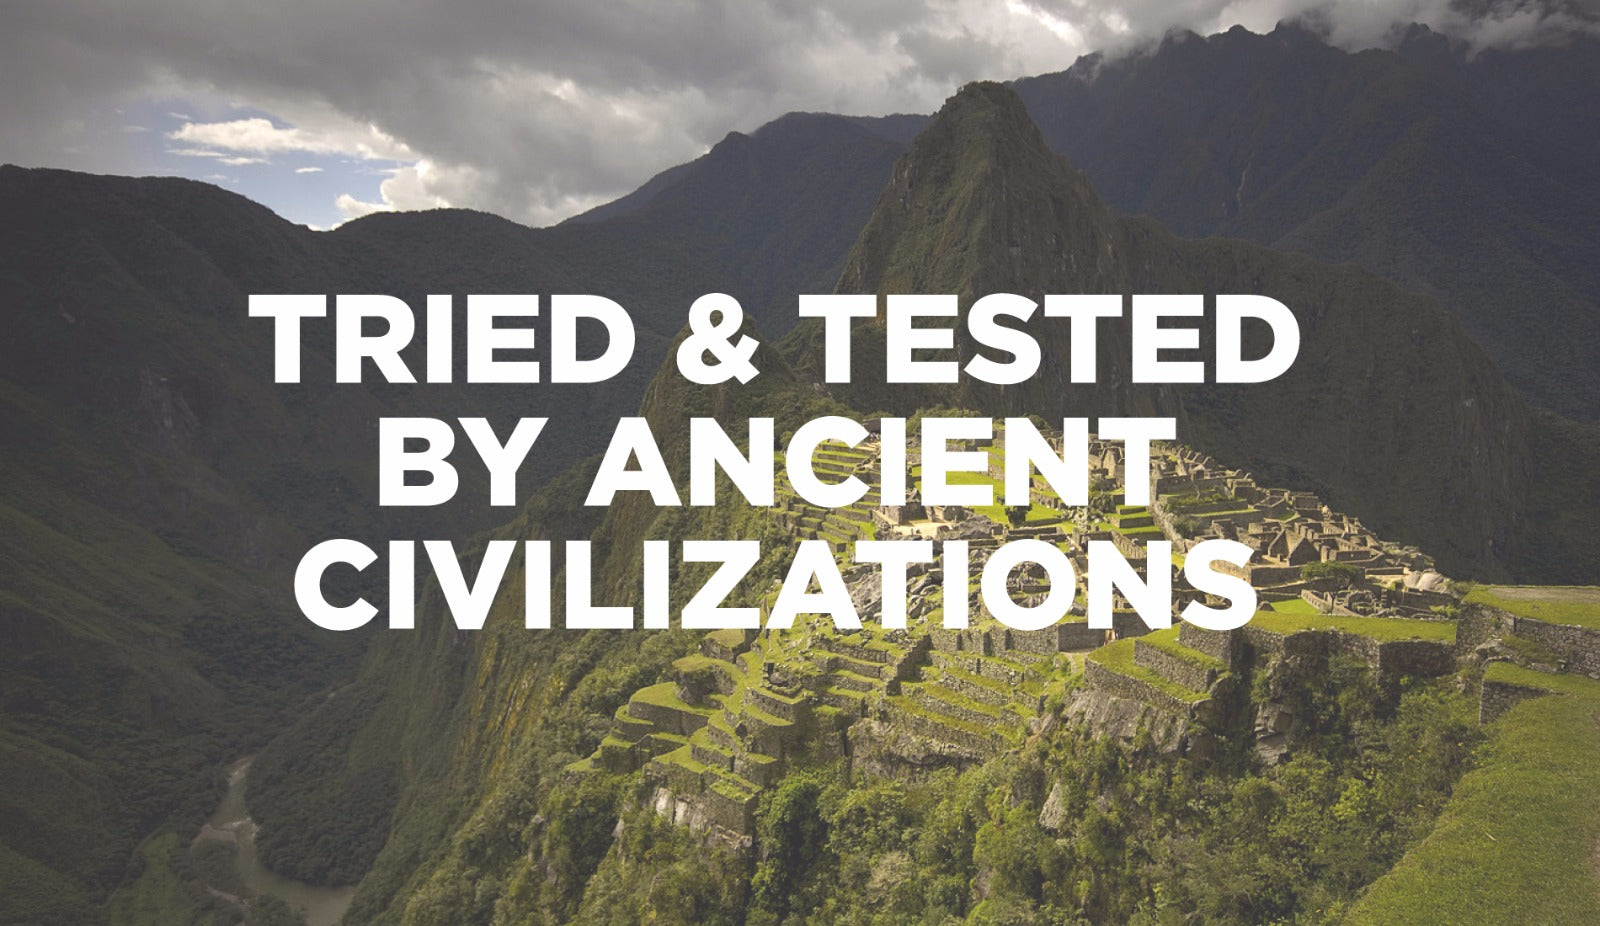 Tried and tested by ancient civilizations